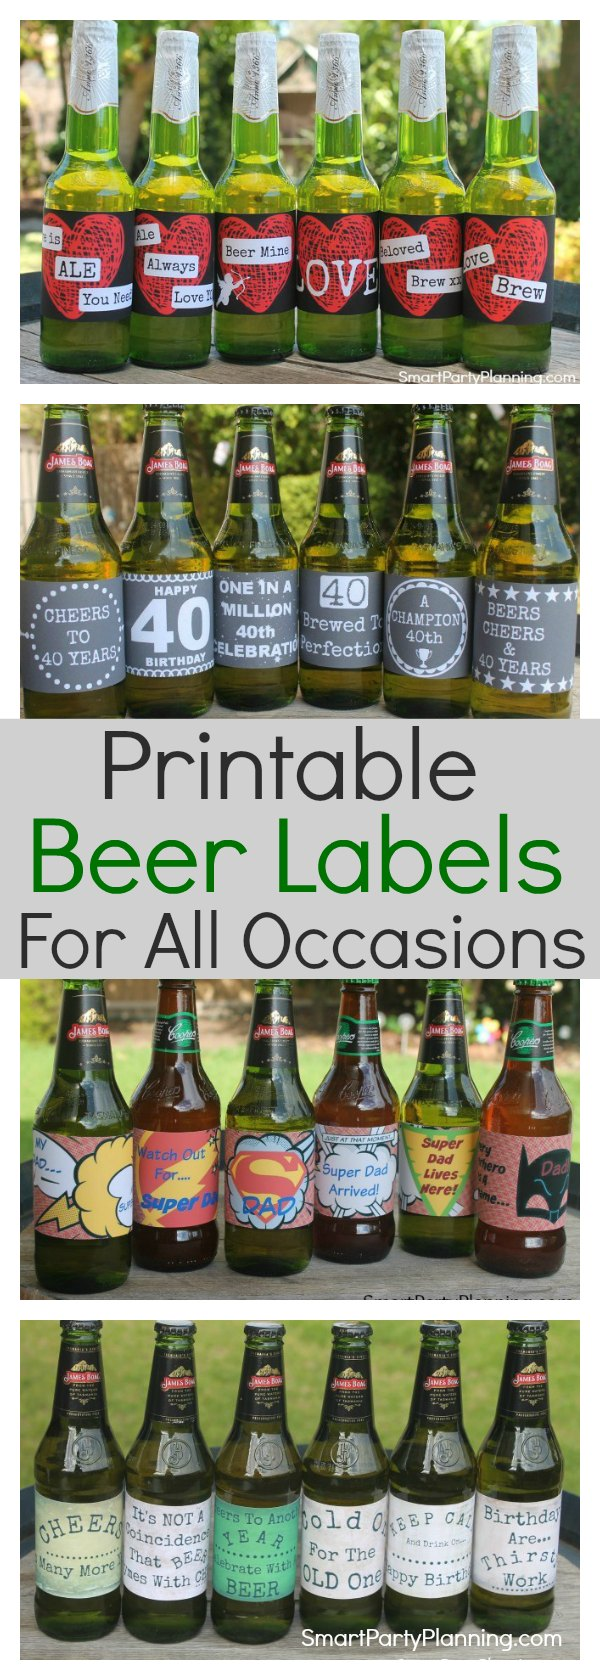 Printable Beer Labels